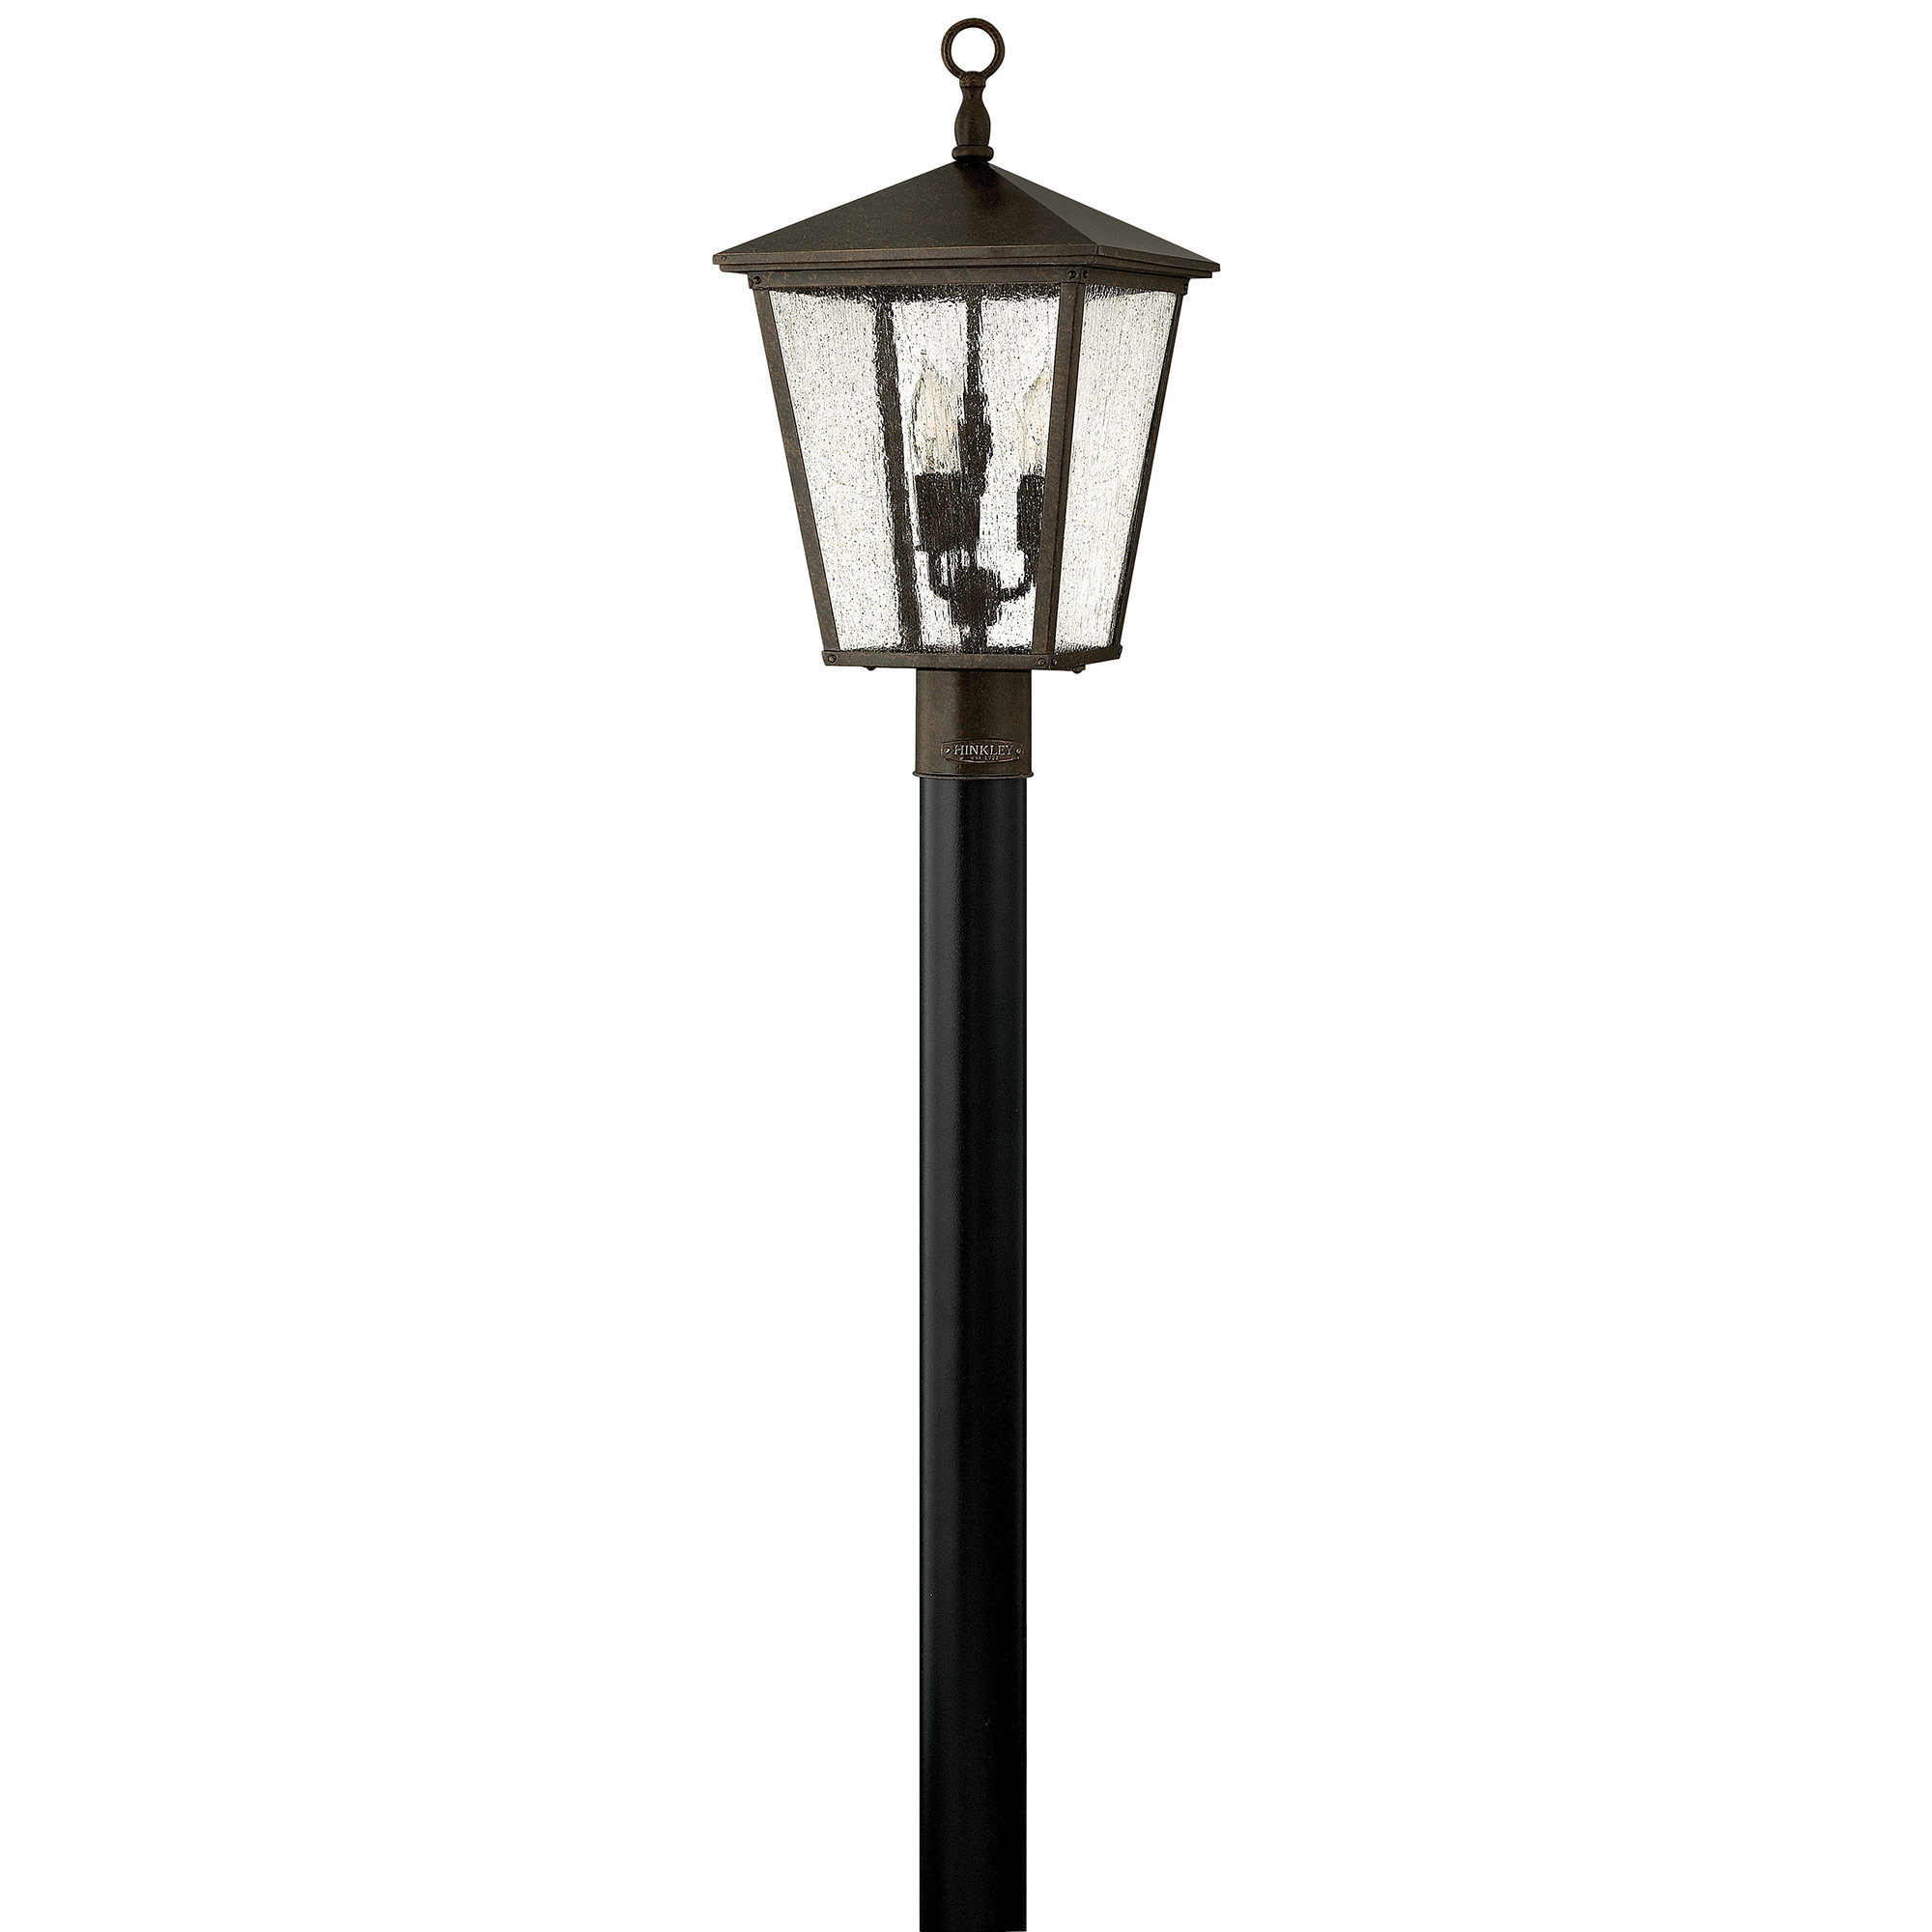 induction lighting pros and cons. Trellis Lighting. Lighting S Induction Pros And Cons